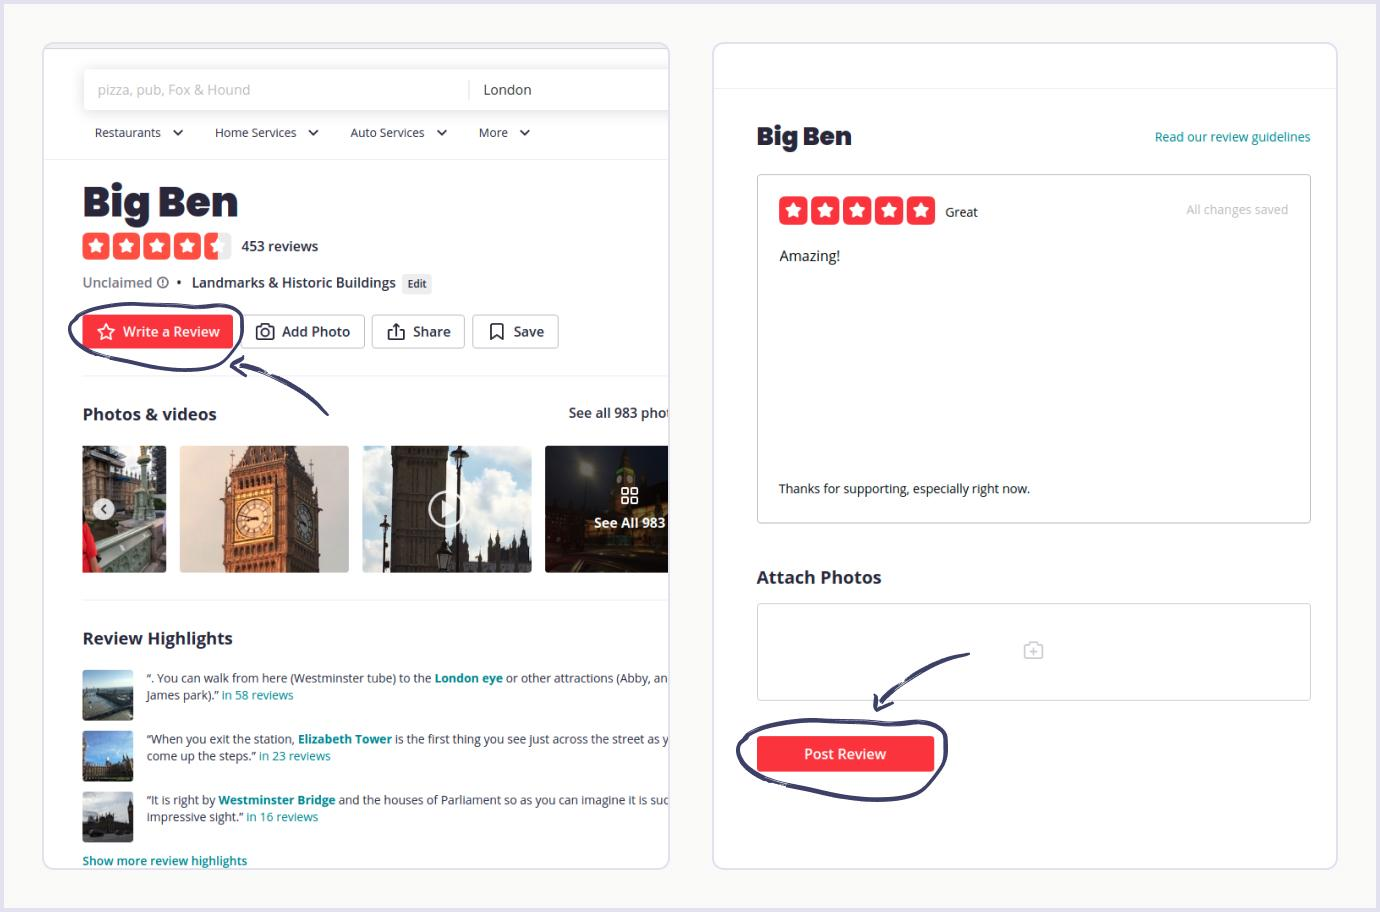 An example of a review on business directory website Yelp